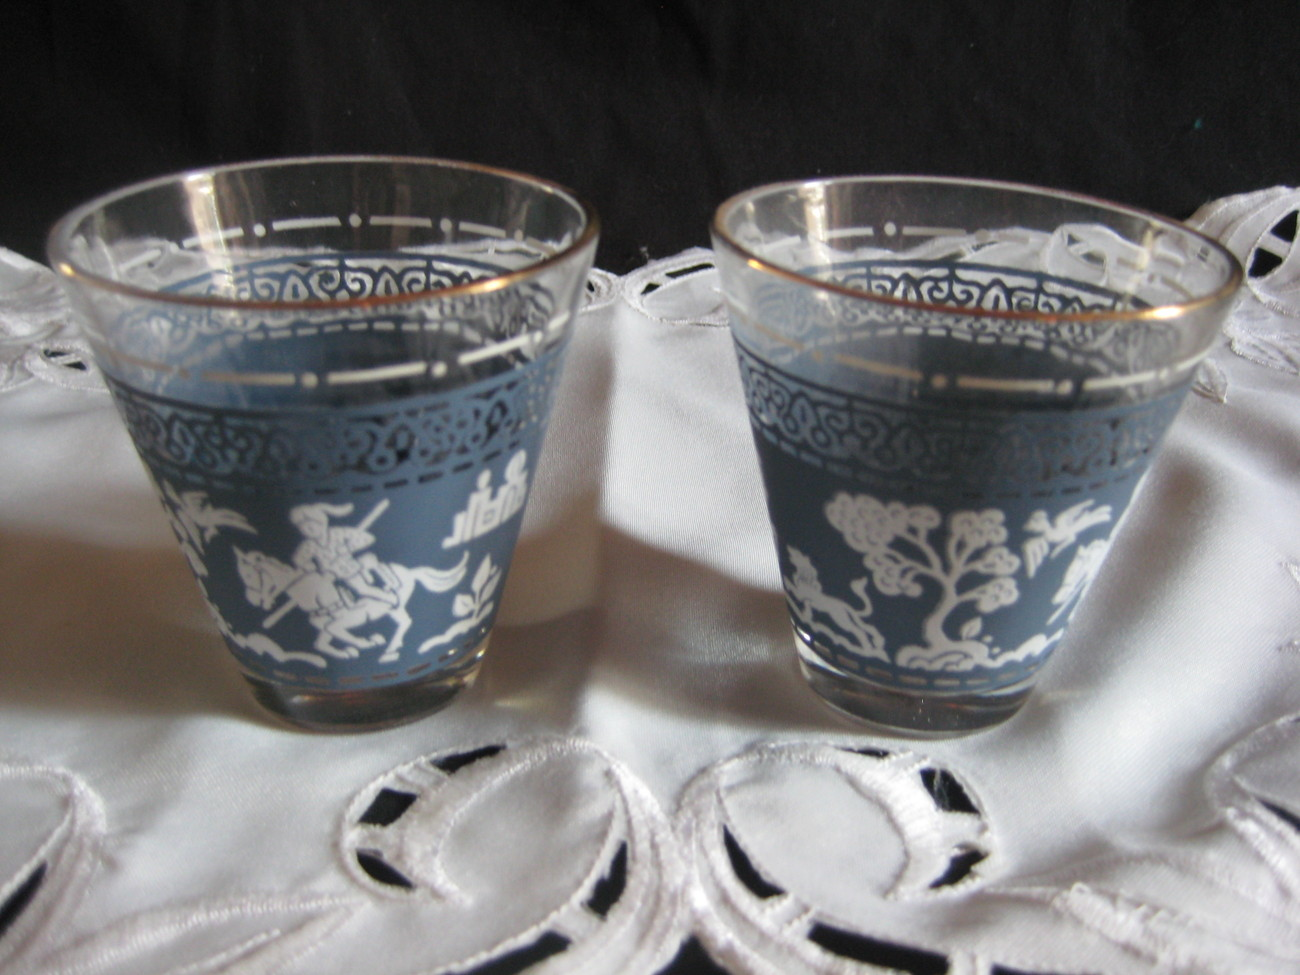 Drinking Glasses Designs Vintage Collectible Drinking Glasses Greek Design Pale